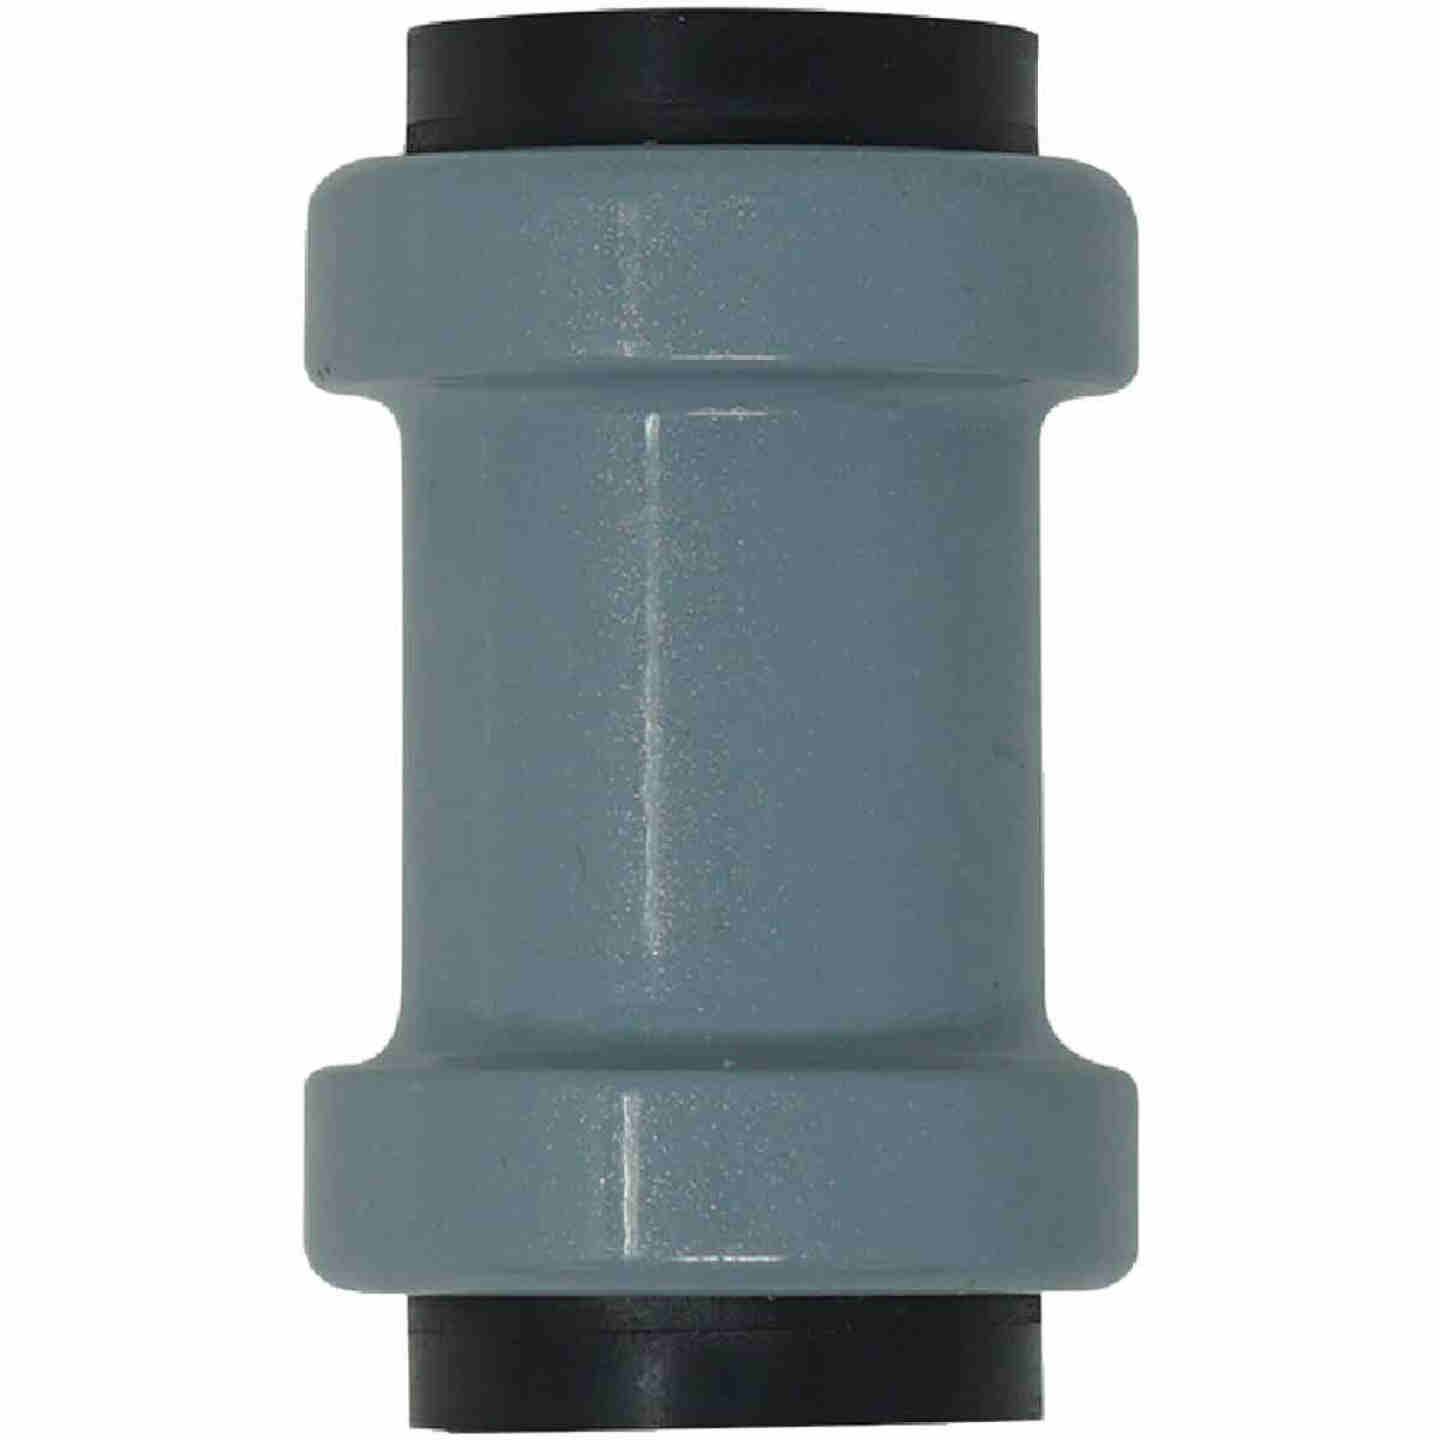 Southwire SimPush 3/4 In. EMT Push-To-Install Conduit Coupling (5-Pack) Image 1